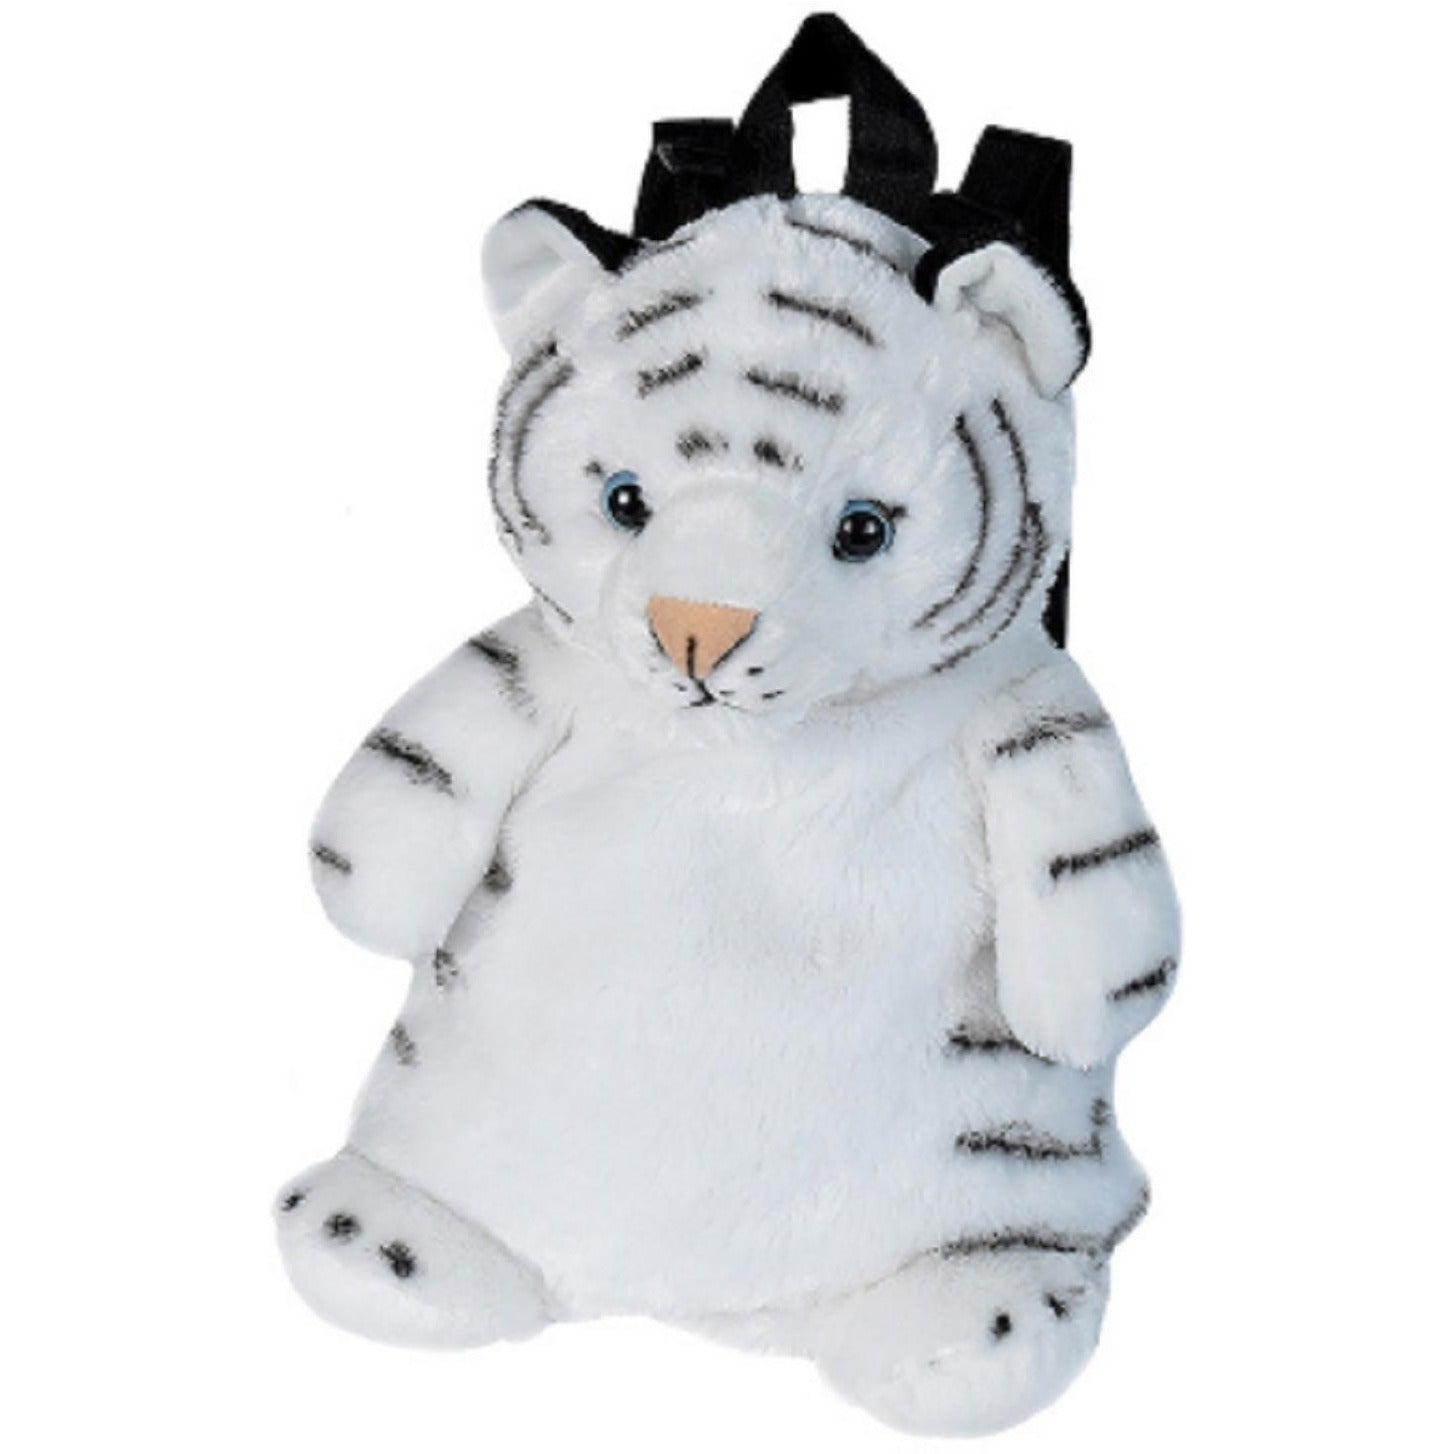 14 Inch White Tiger Plush Stuffed Animal Backpack By Wild Republic